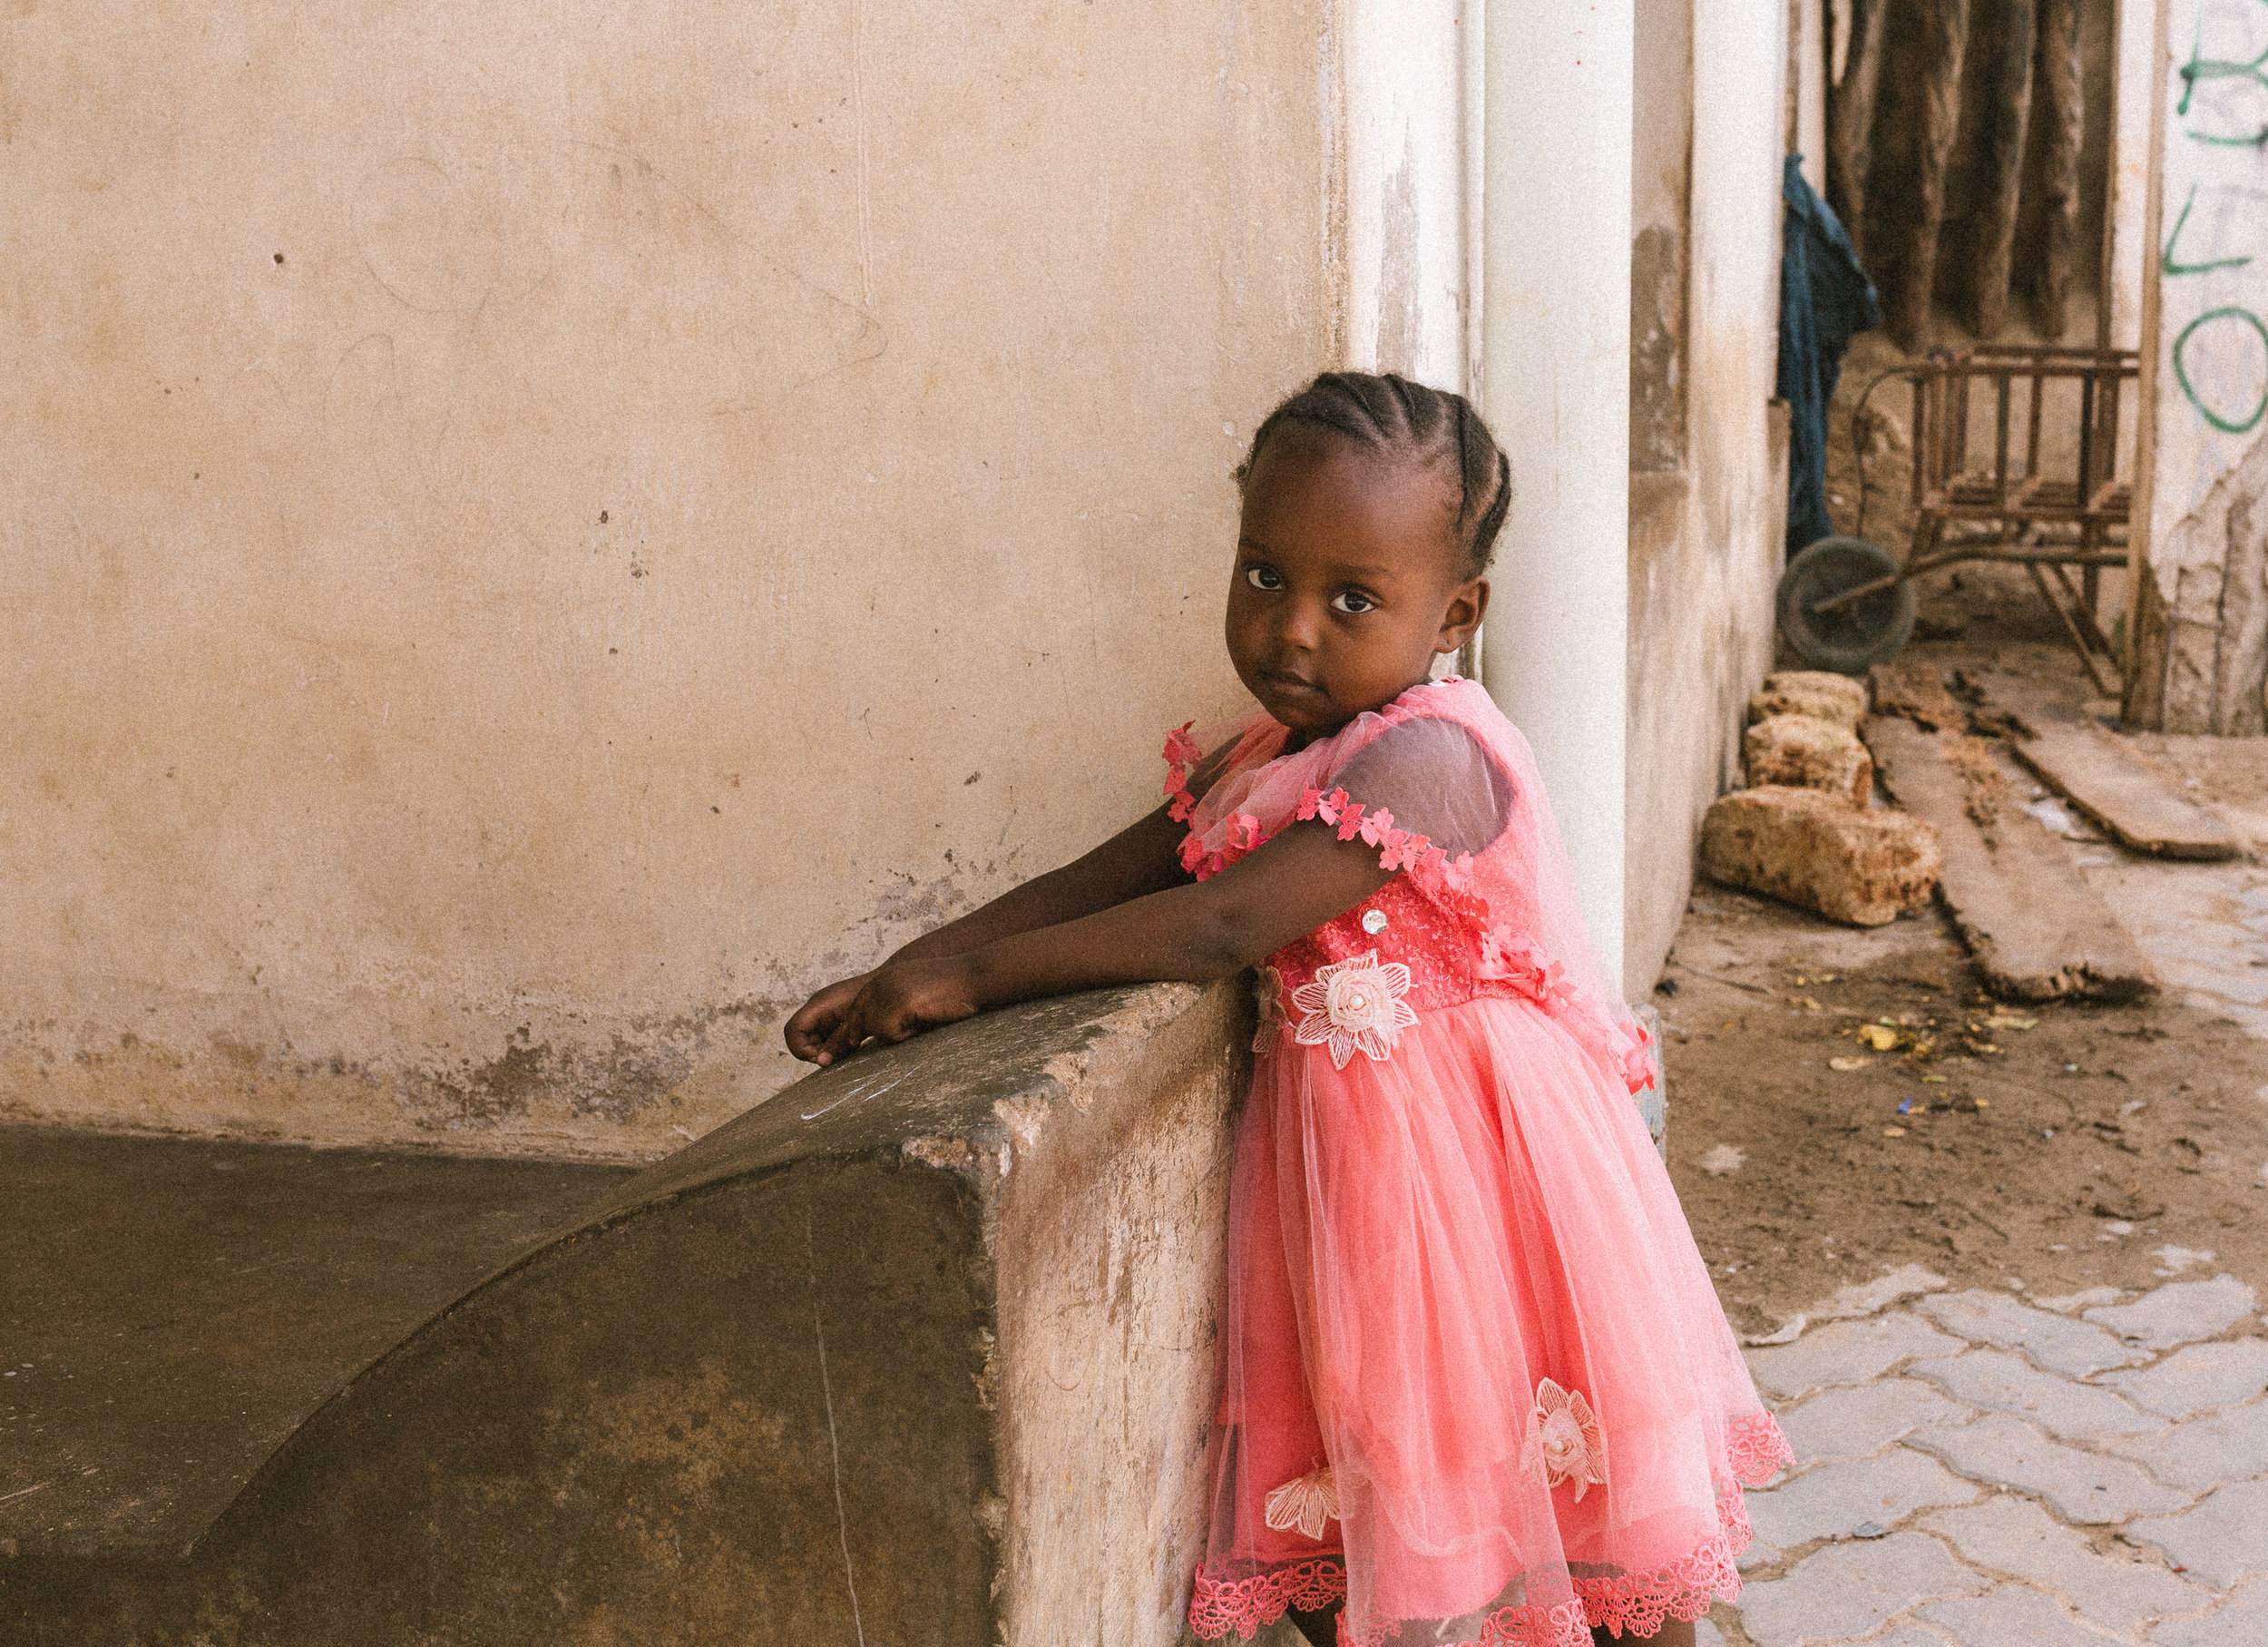 lamu_kenya_ashlee_oneil_photo_child.jpg